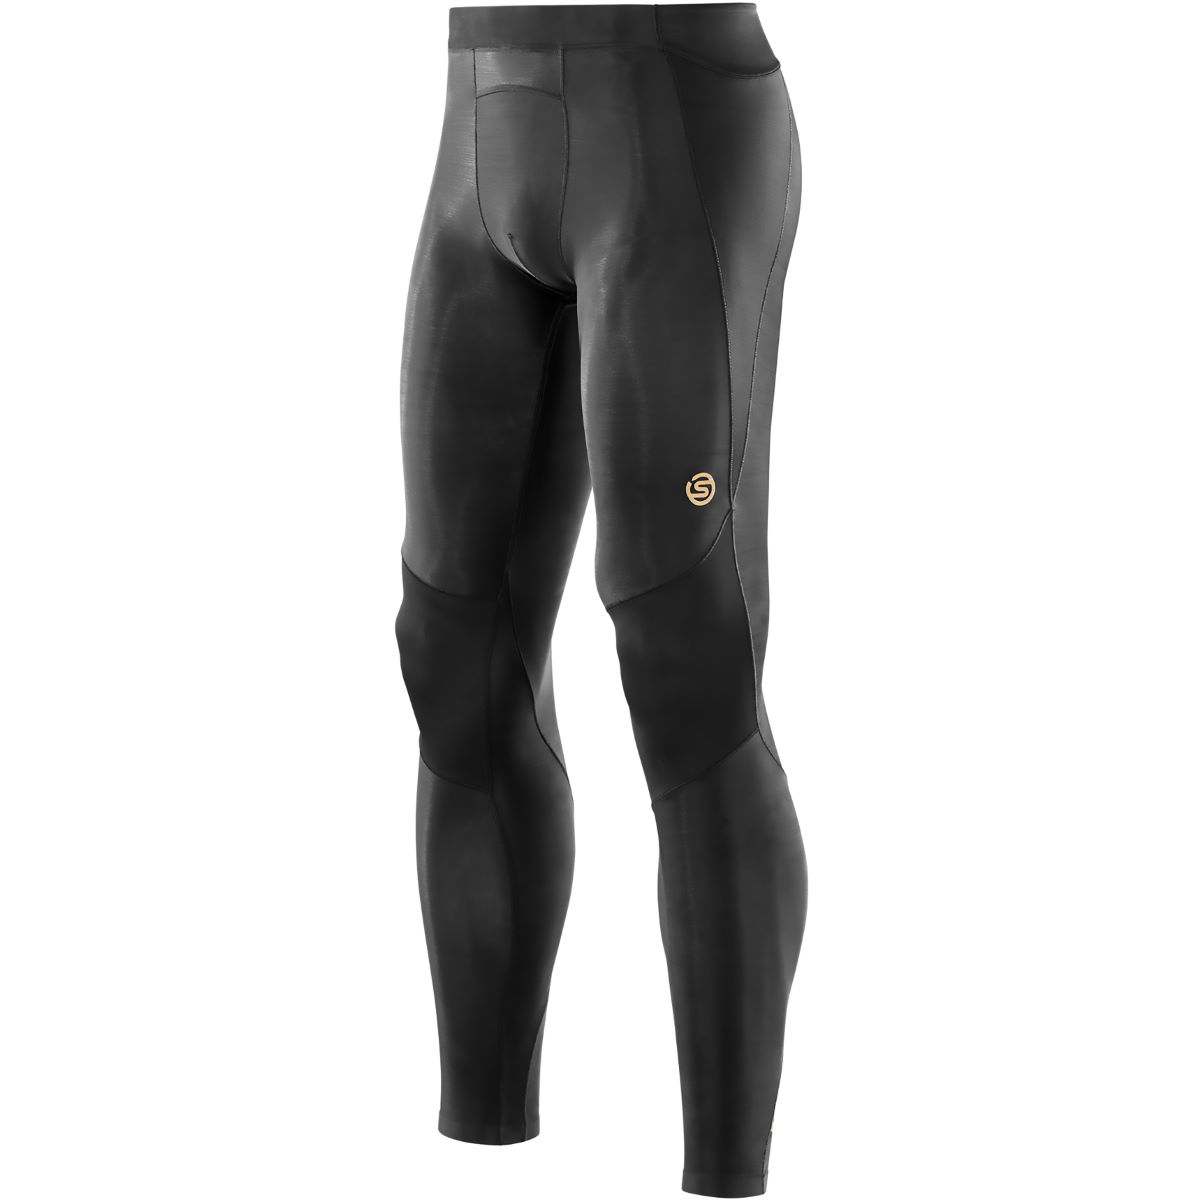 Collant long SKINS A400 - XL Noir Sous-vêtements compression